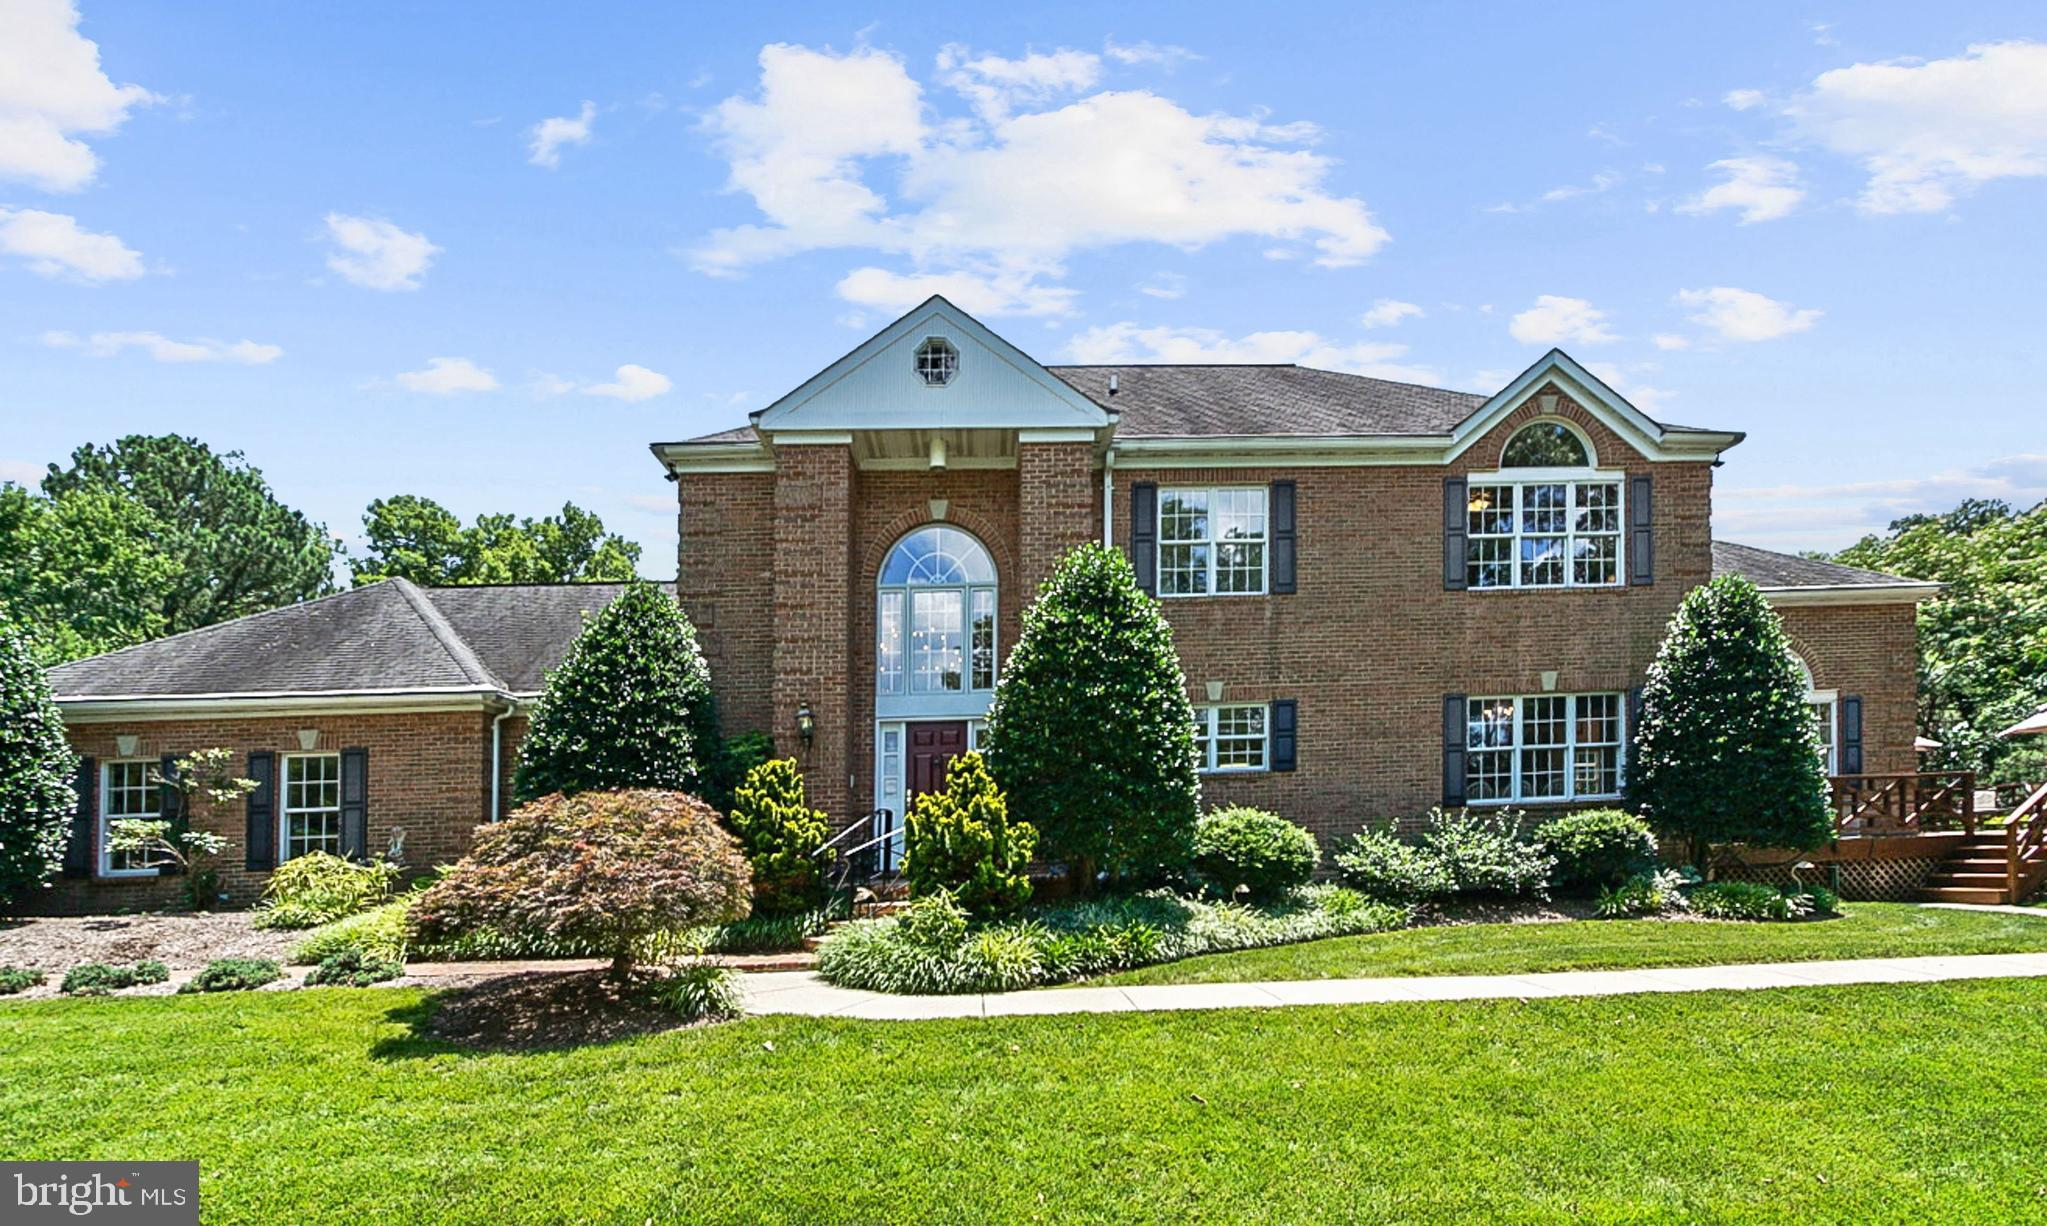 500 SWAGGERS POINT ROAD, SOLOMONS, MD 20688